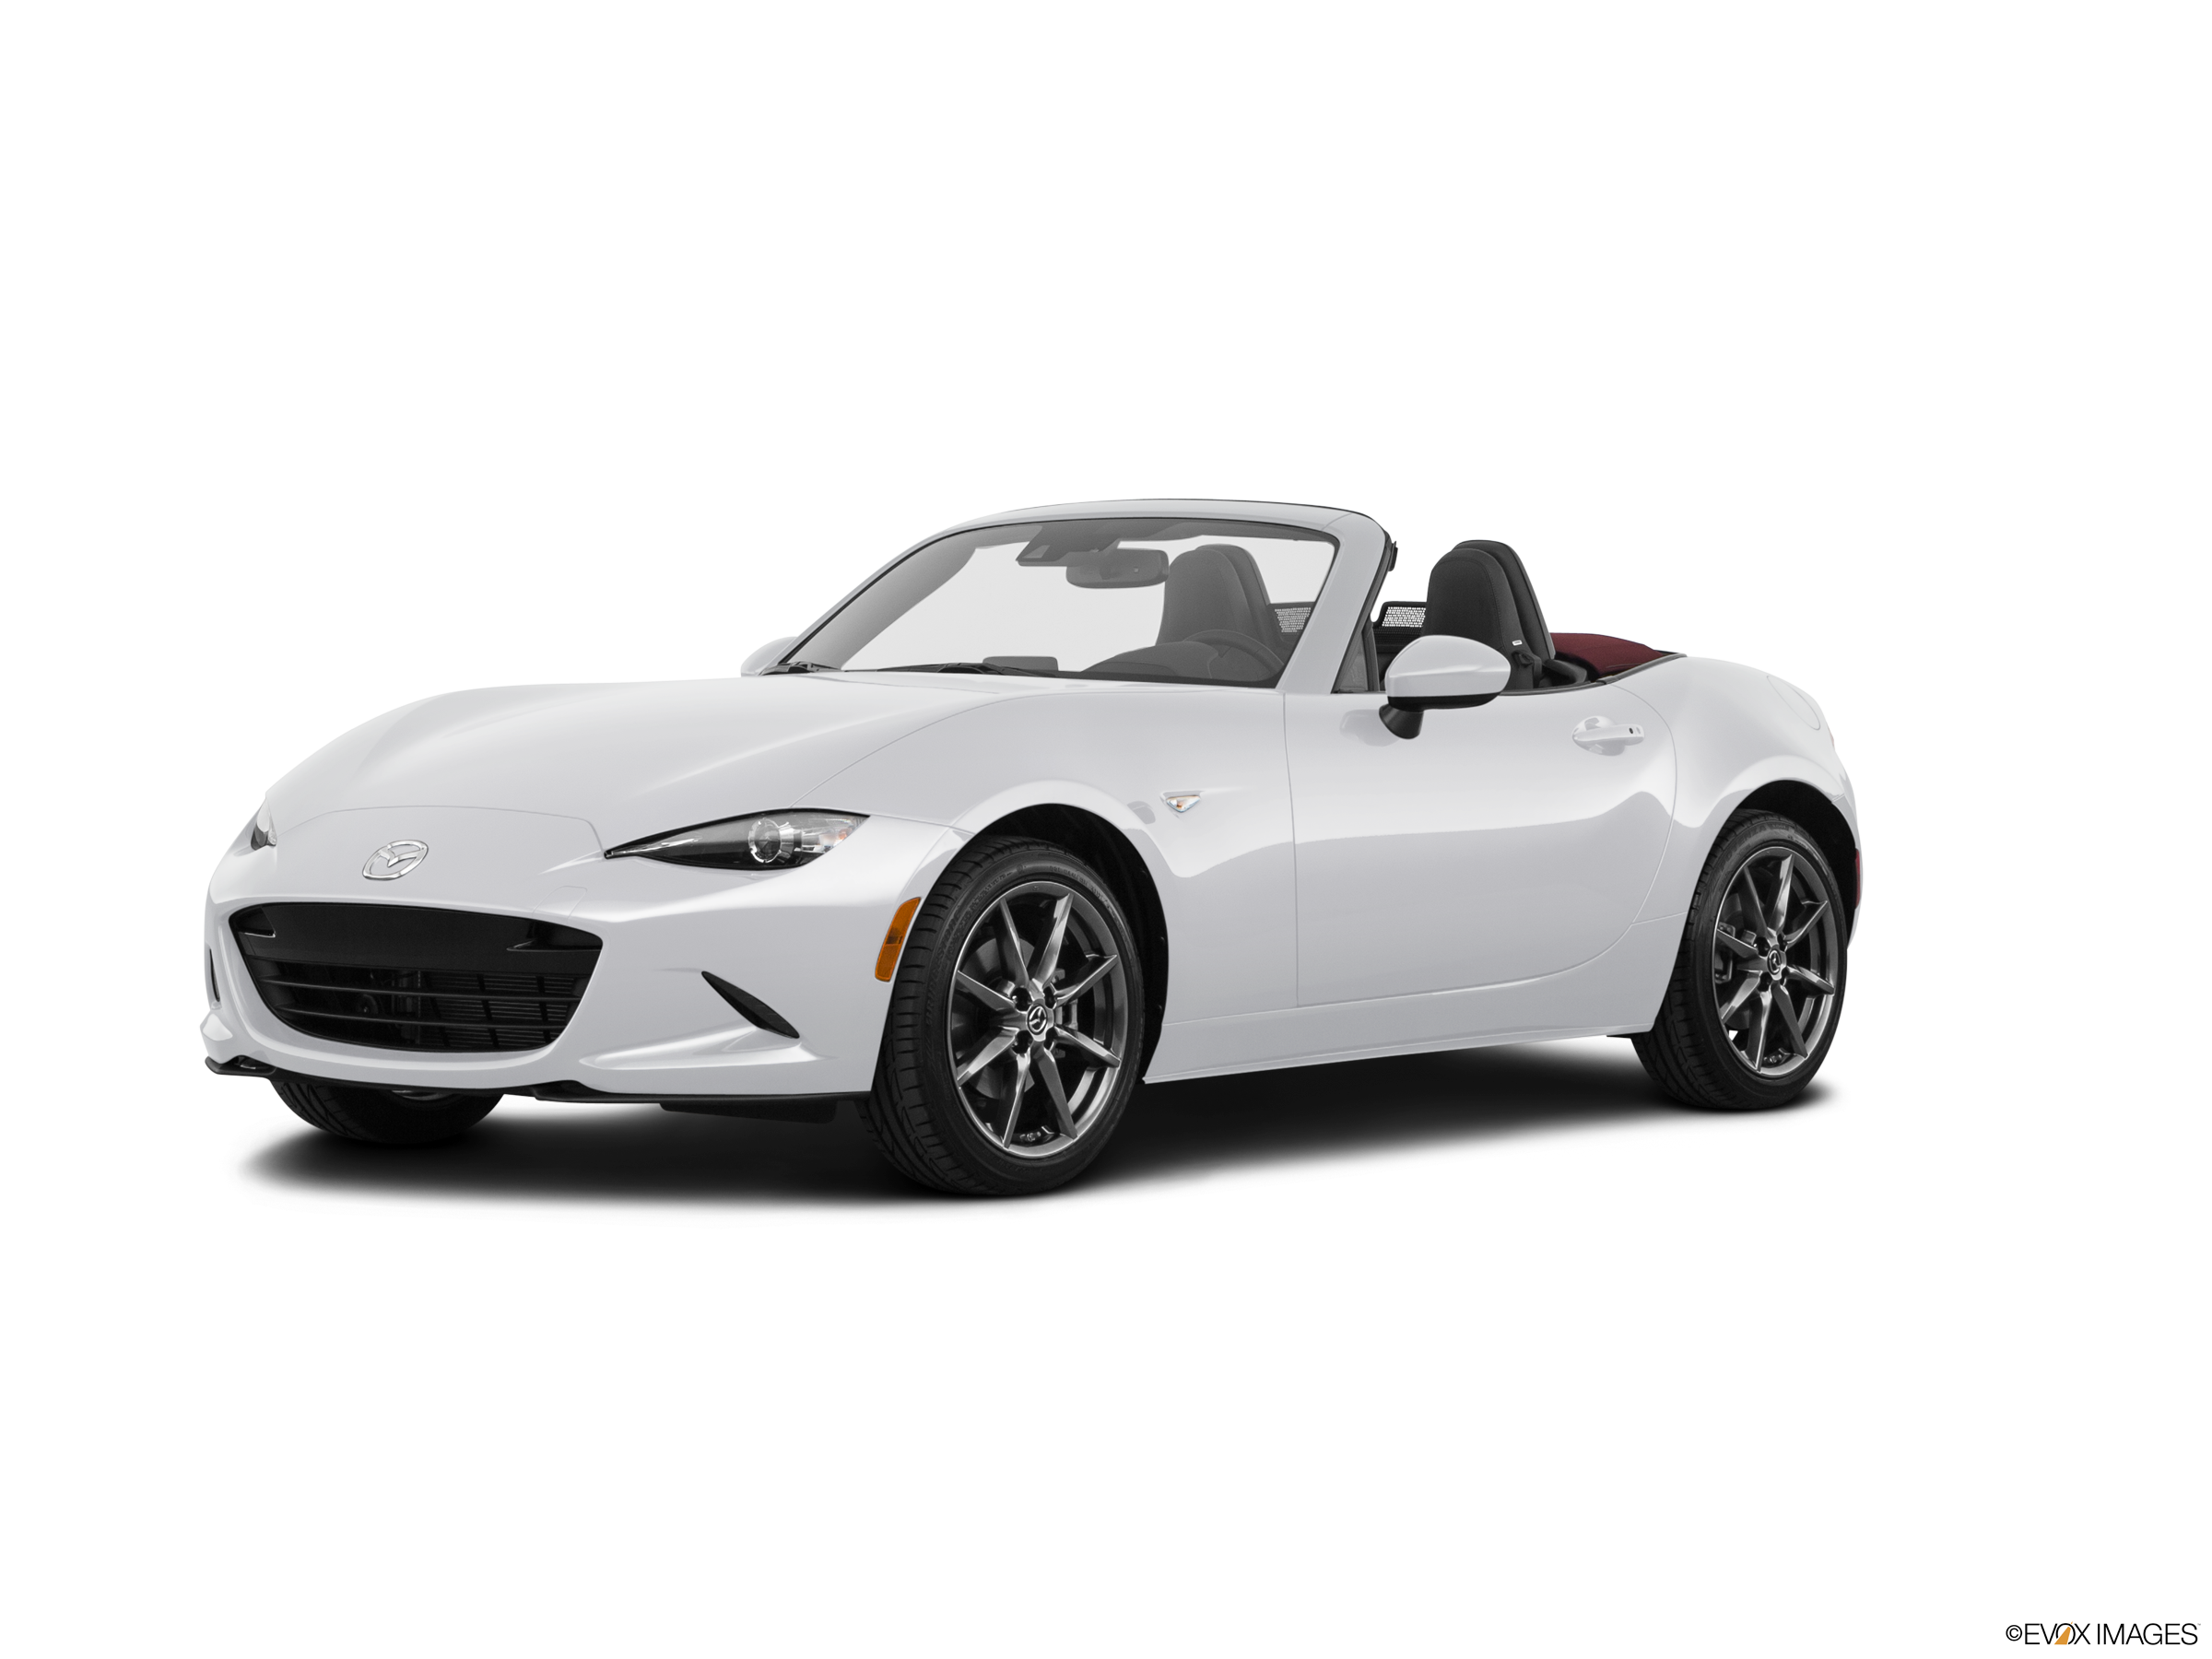 Most Popular Convertibles of 2019 - 2019 MAZDA MX-5 Miata